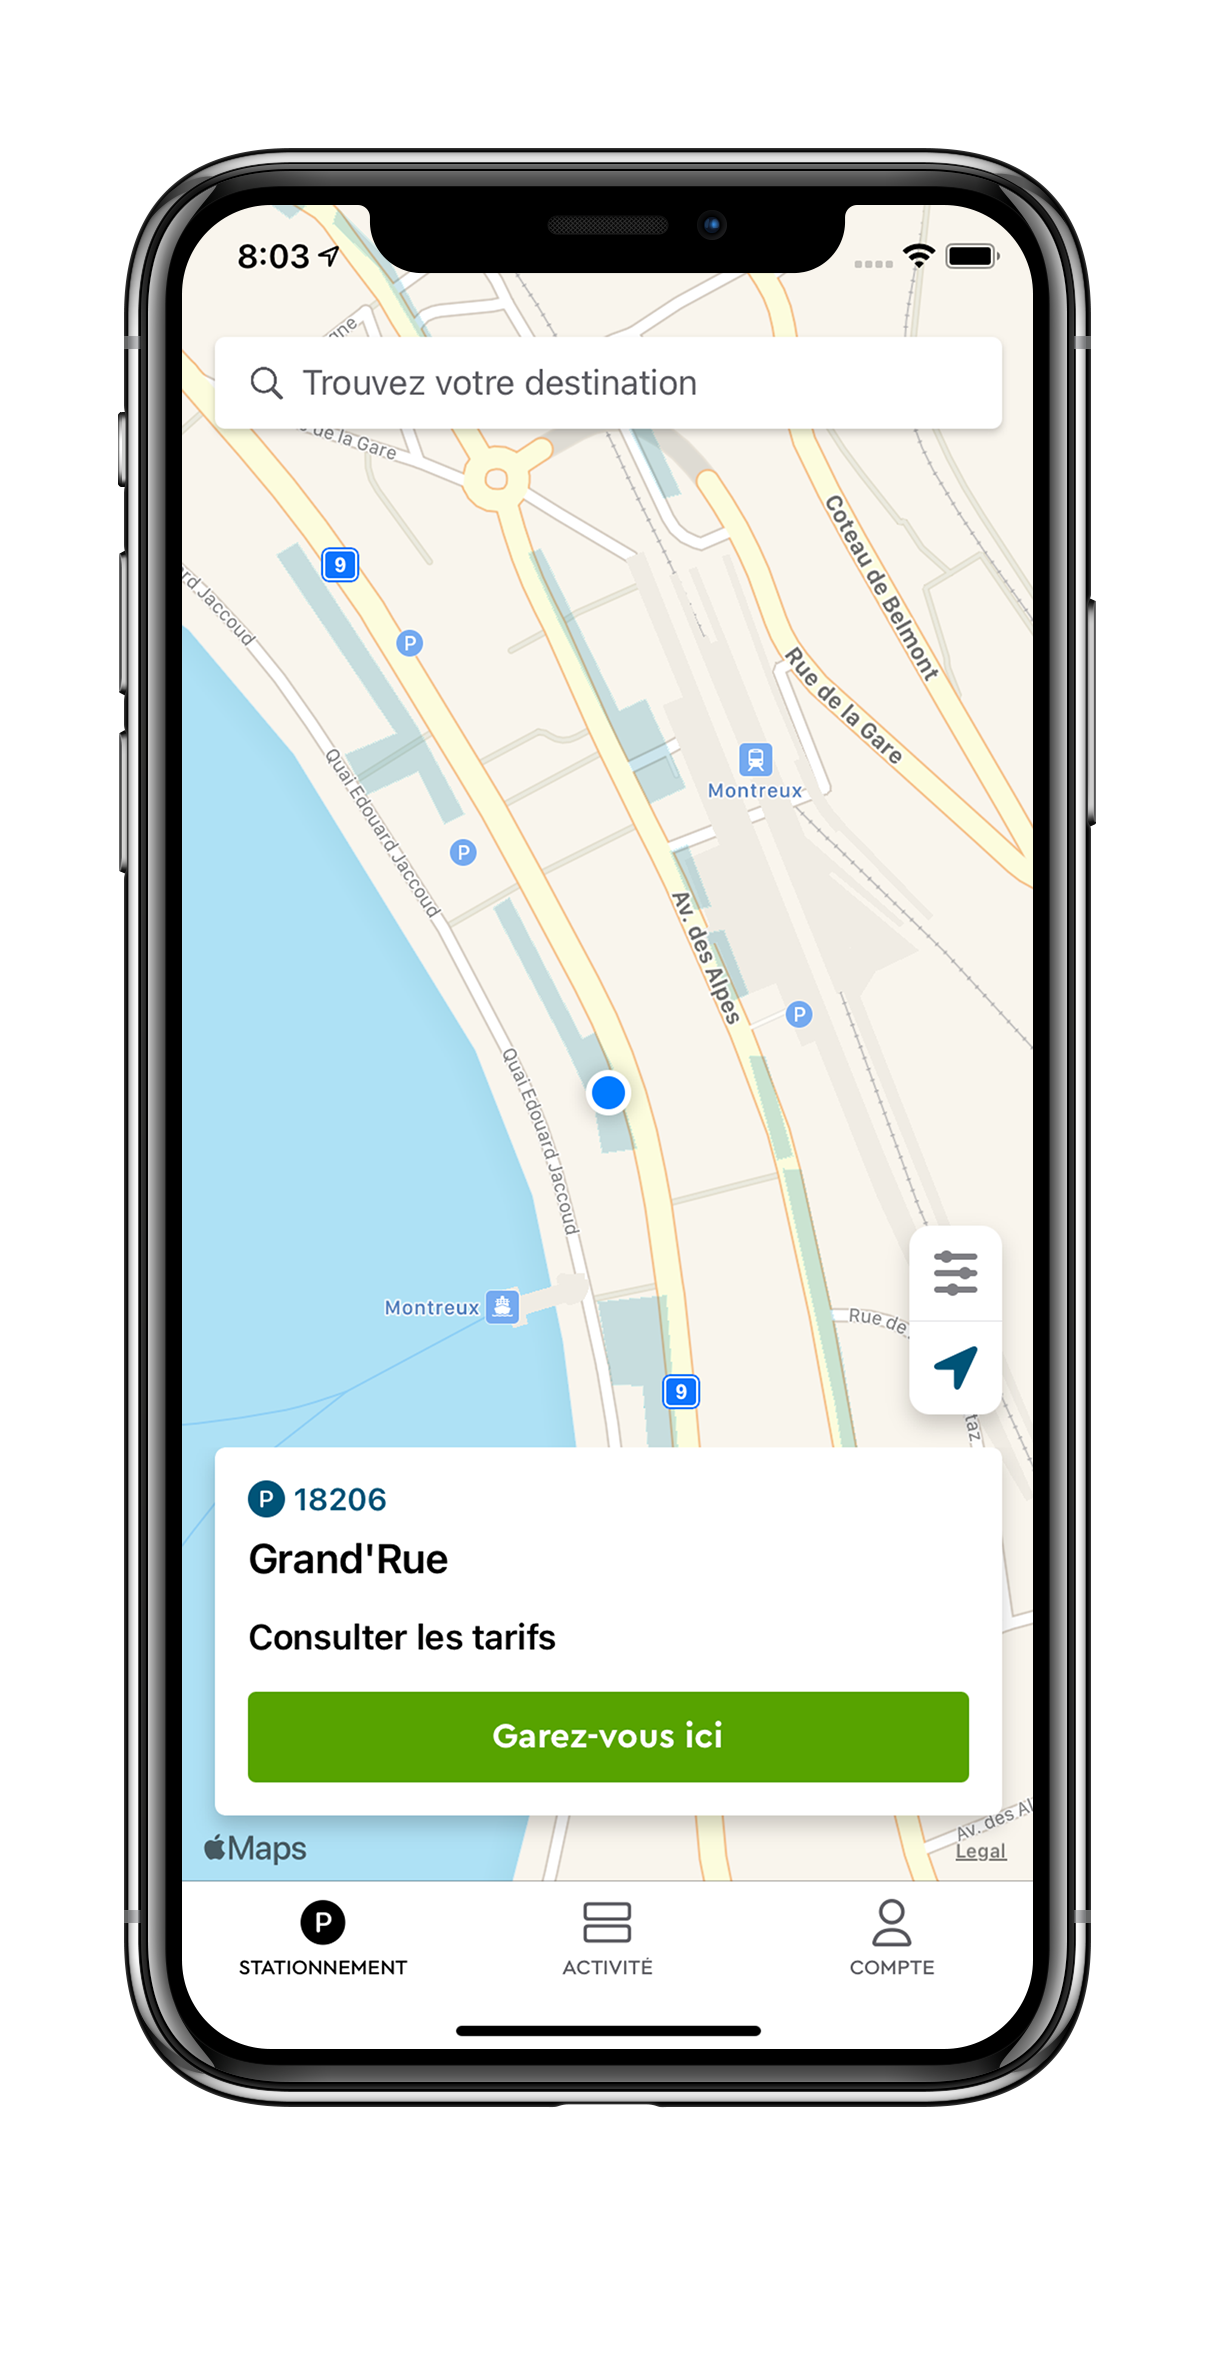 CHFR-StartParking-PARKNOW-iPhone-X-Mockup-Cropped